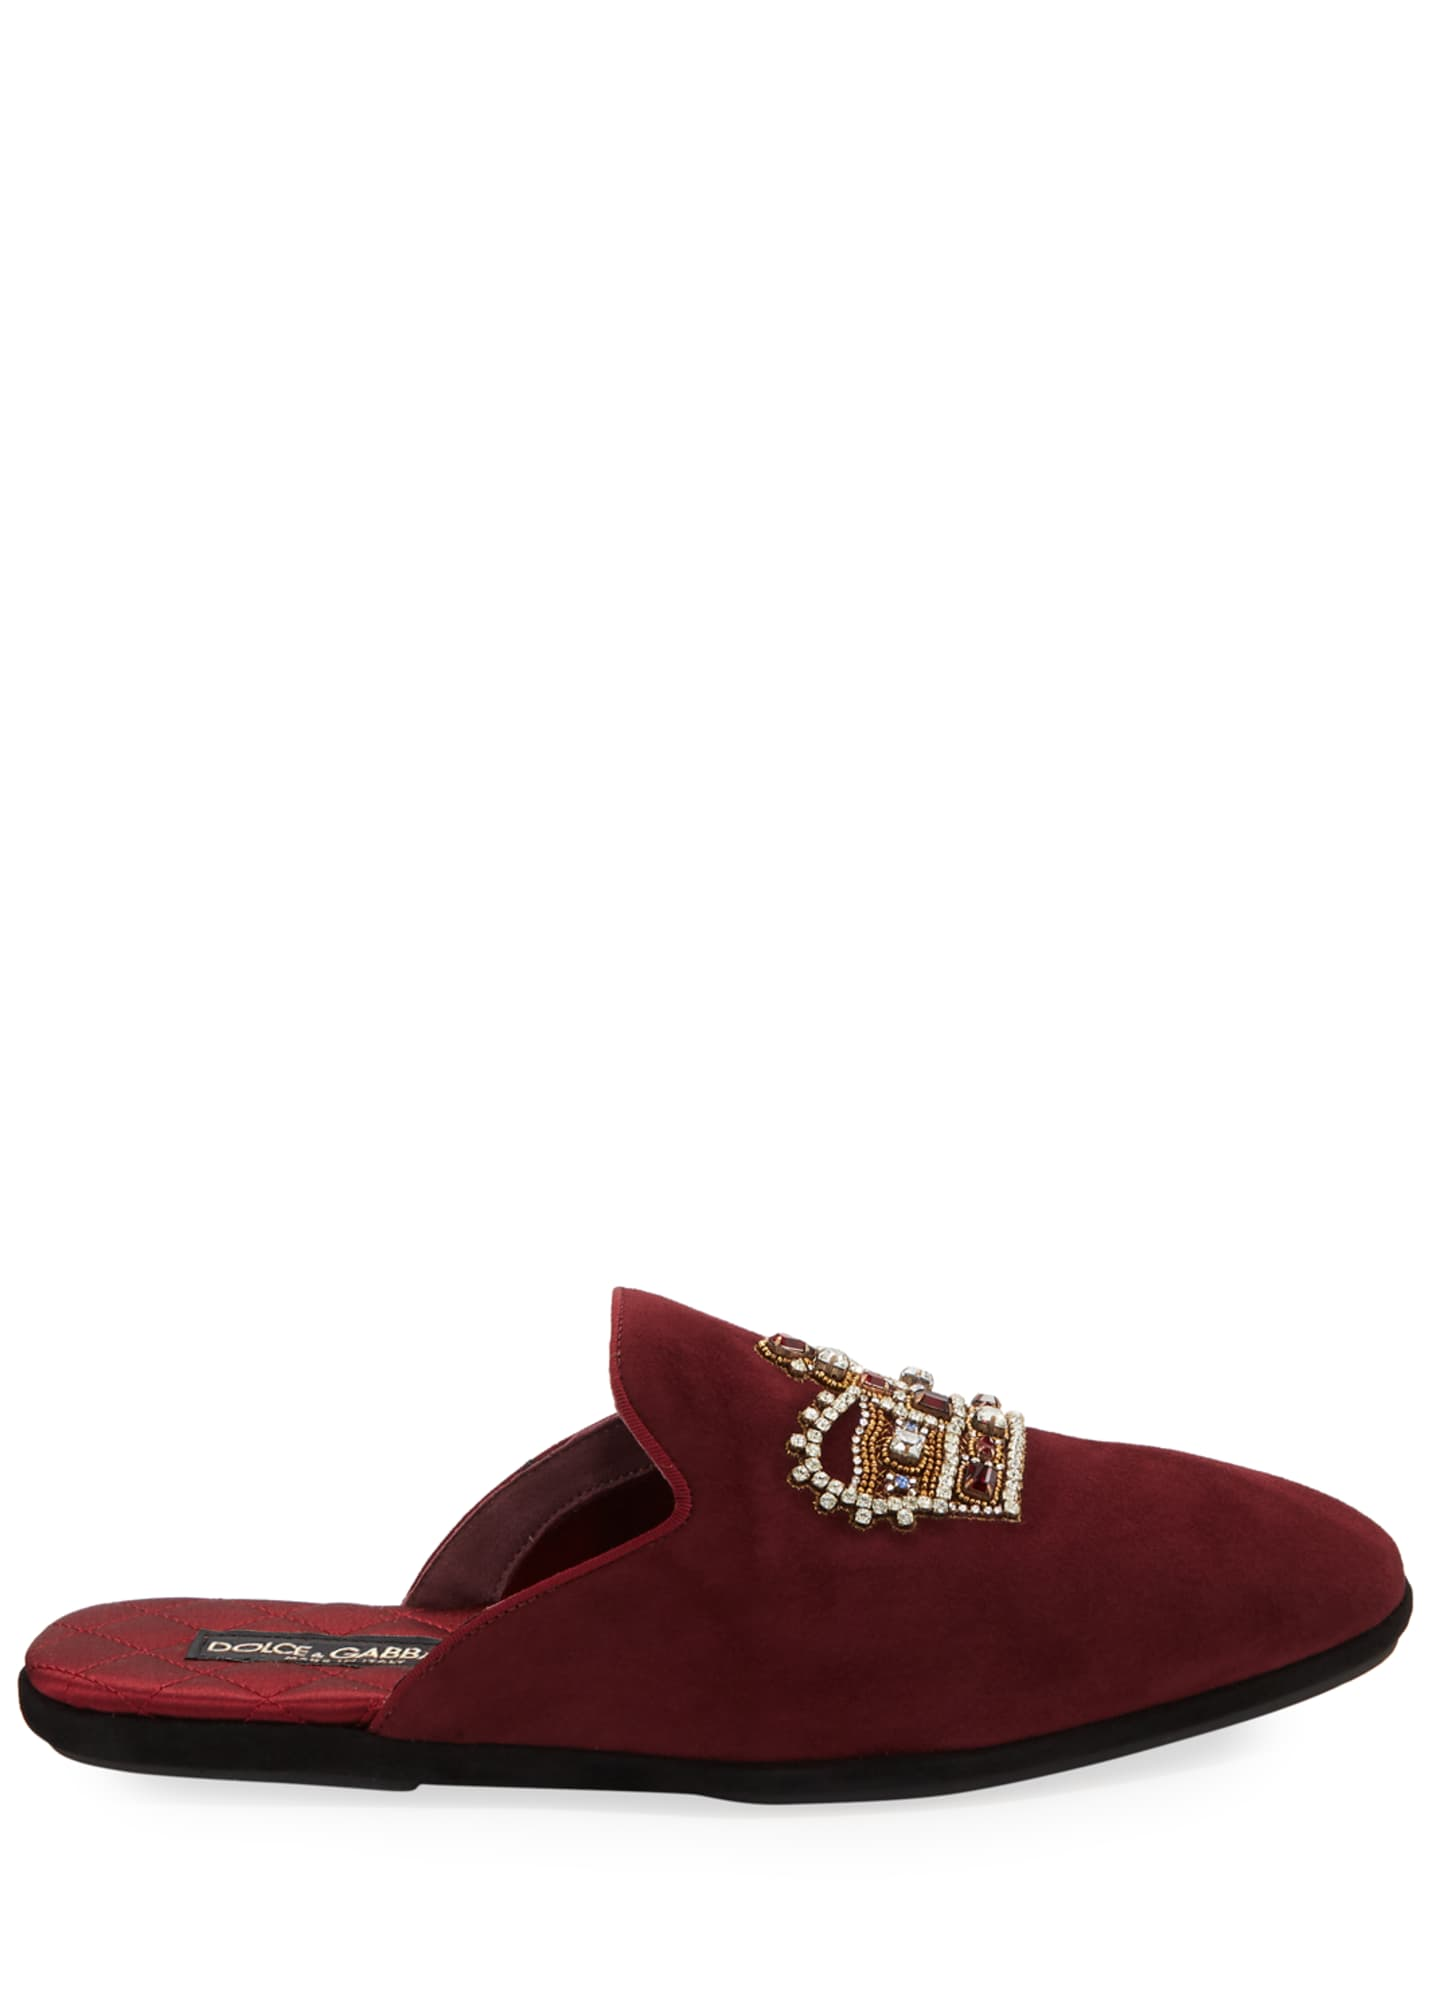 Image 3 of 3: Men's Da Camera Embellished Suede Slippers